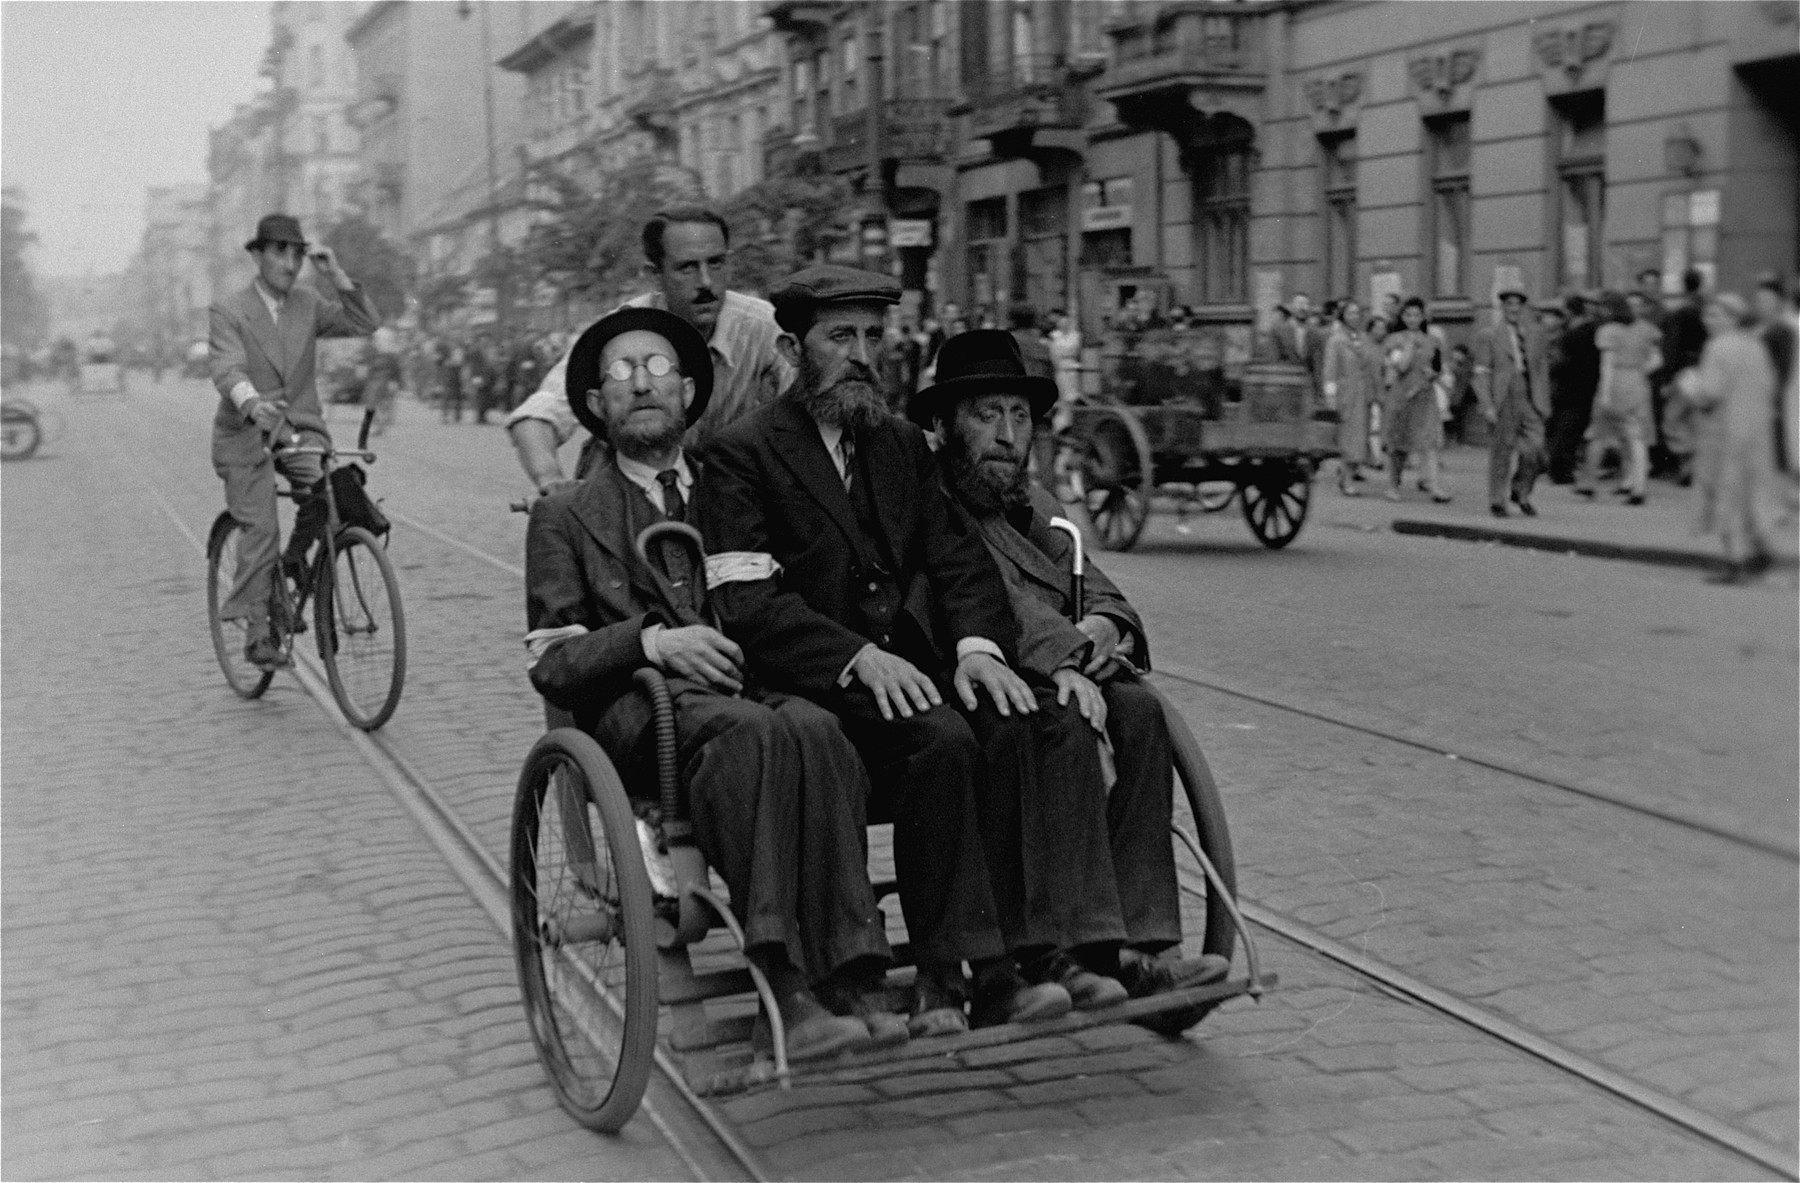 Three Jewish men ride in a rickshaw along a street in the Warsaw ghetto.